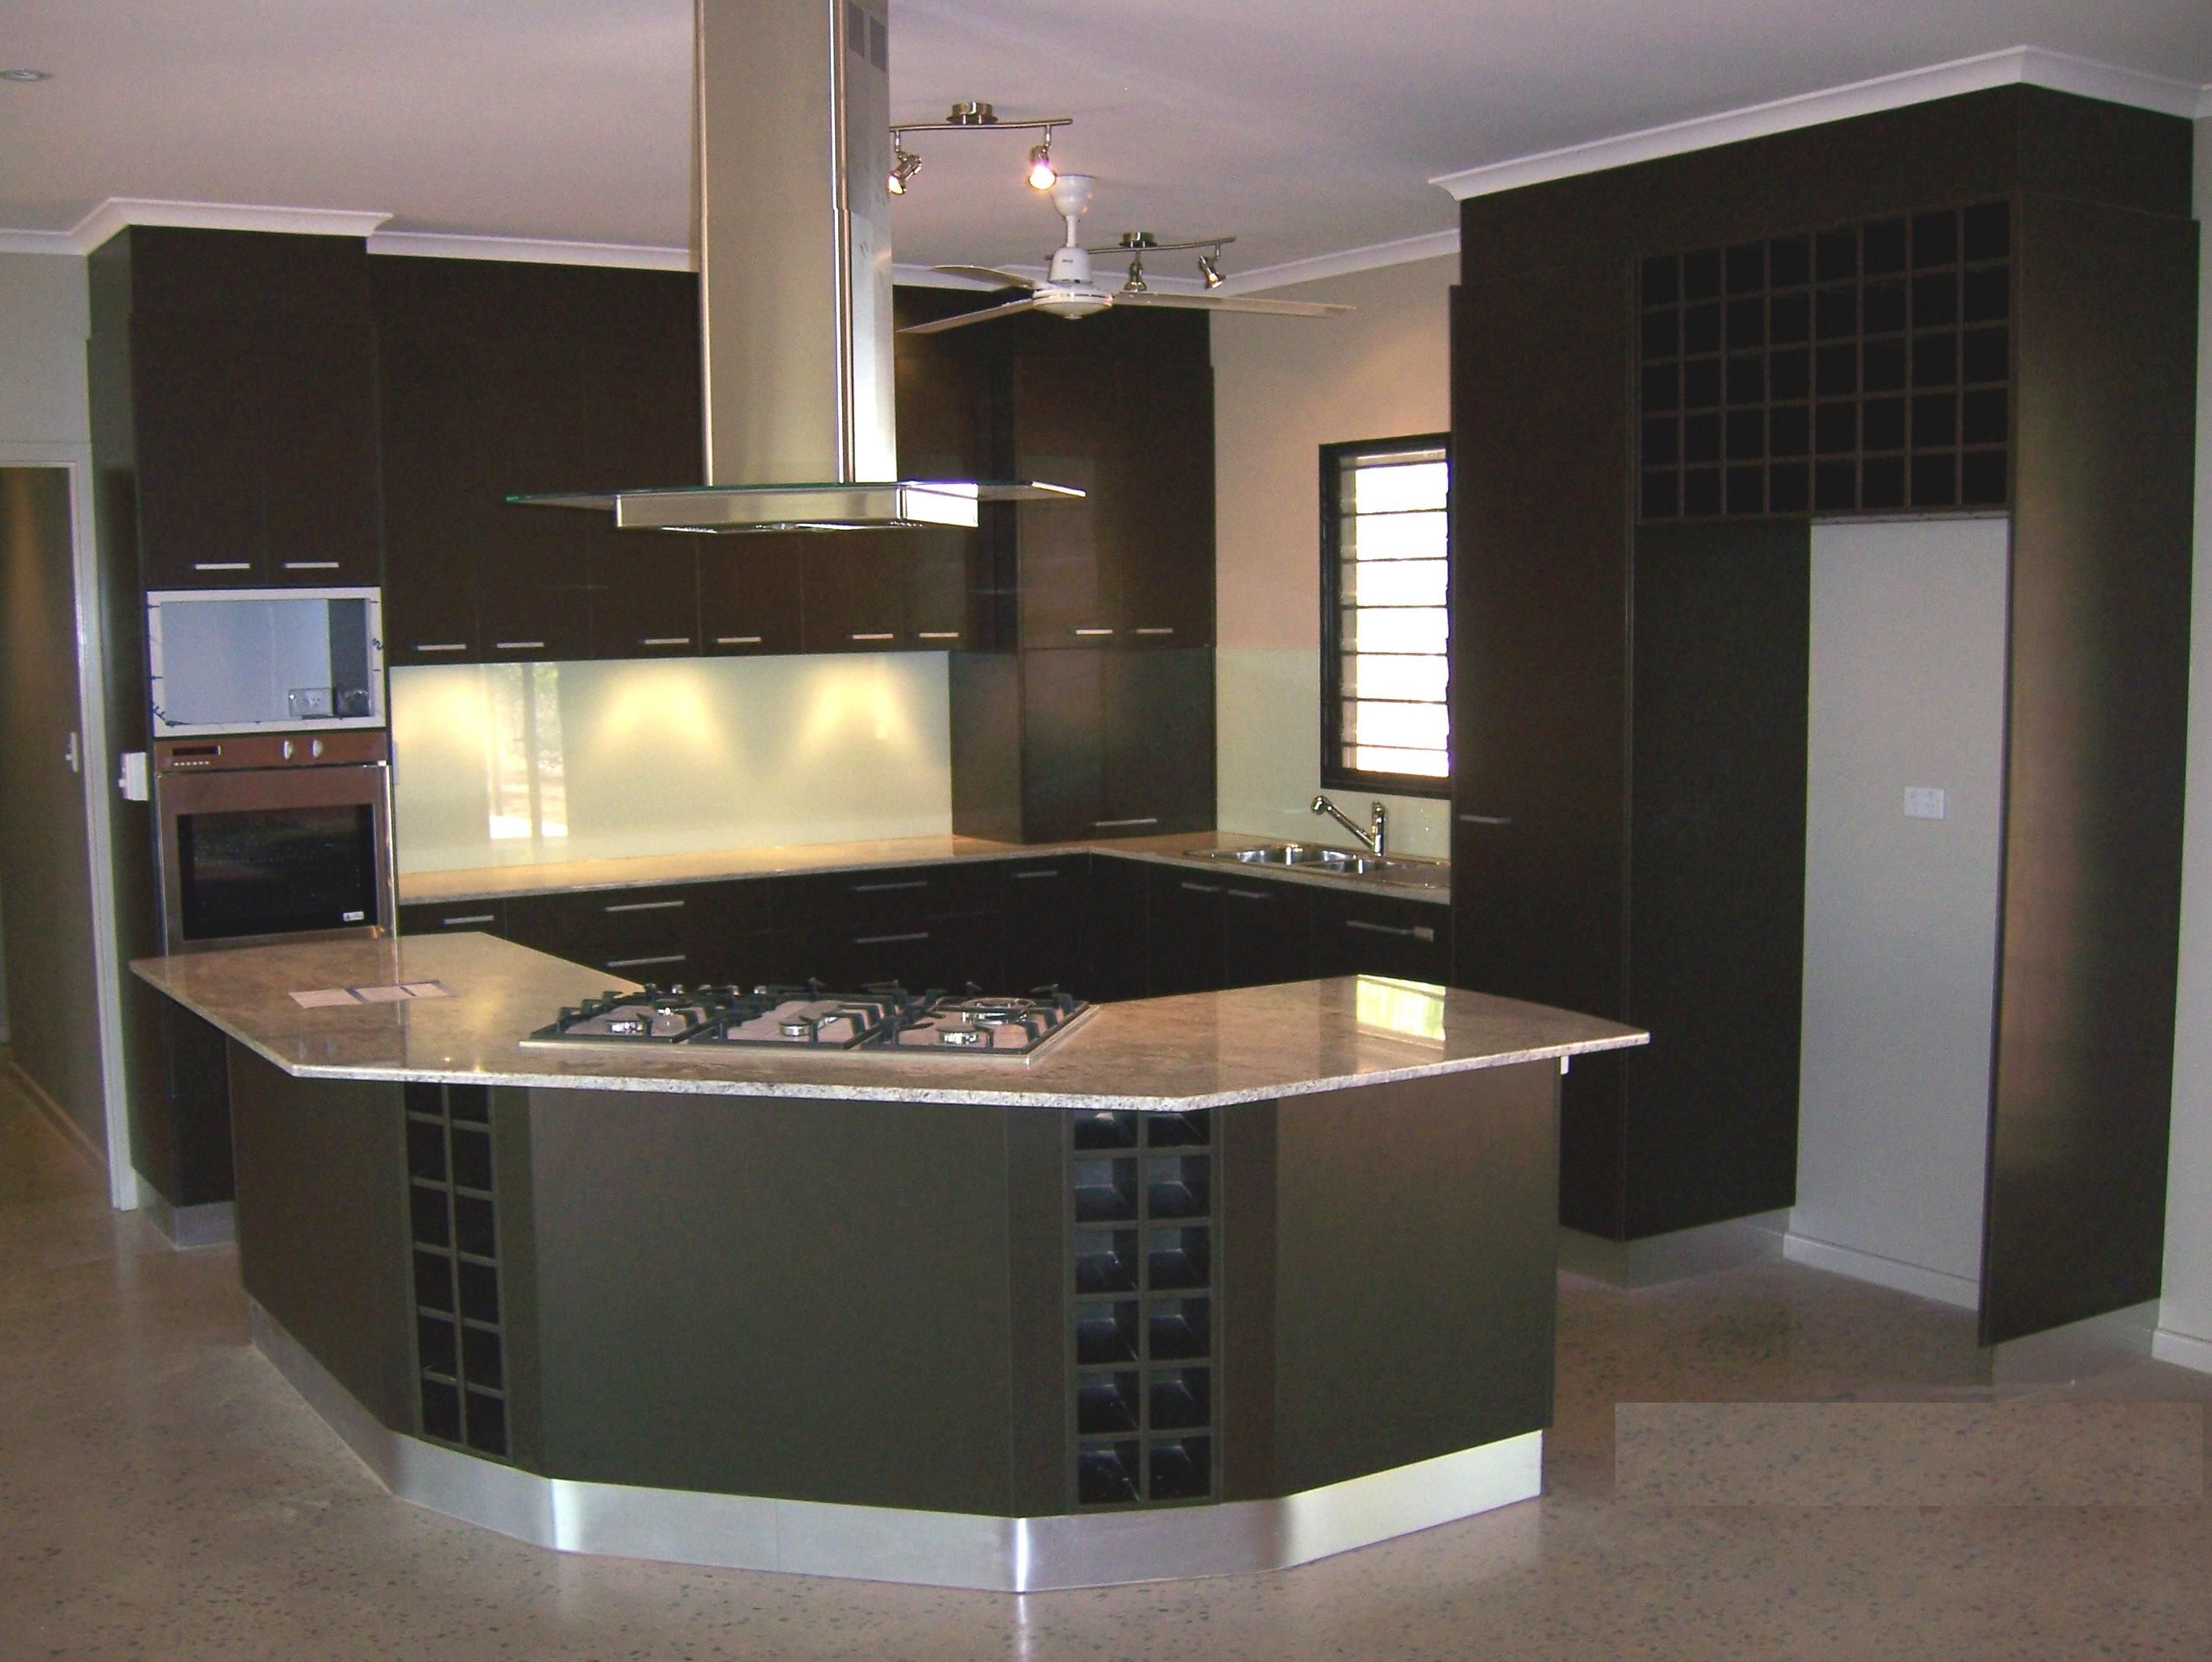 Kitchen Design Classes Interesting Mi Cocina Favoritasolo Cambiaria El Color Y Estilo  Cabinets Inspiration Design